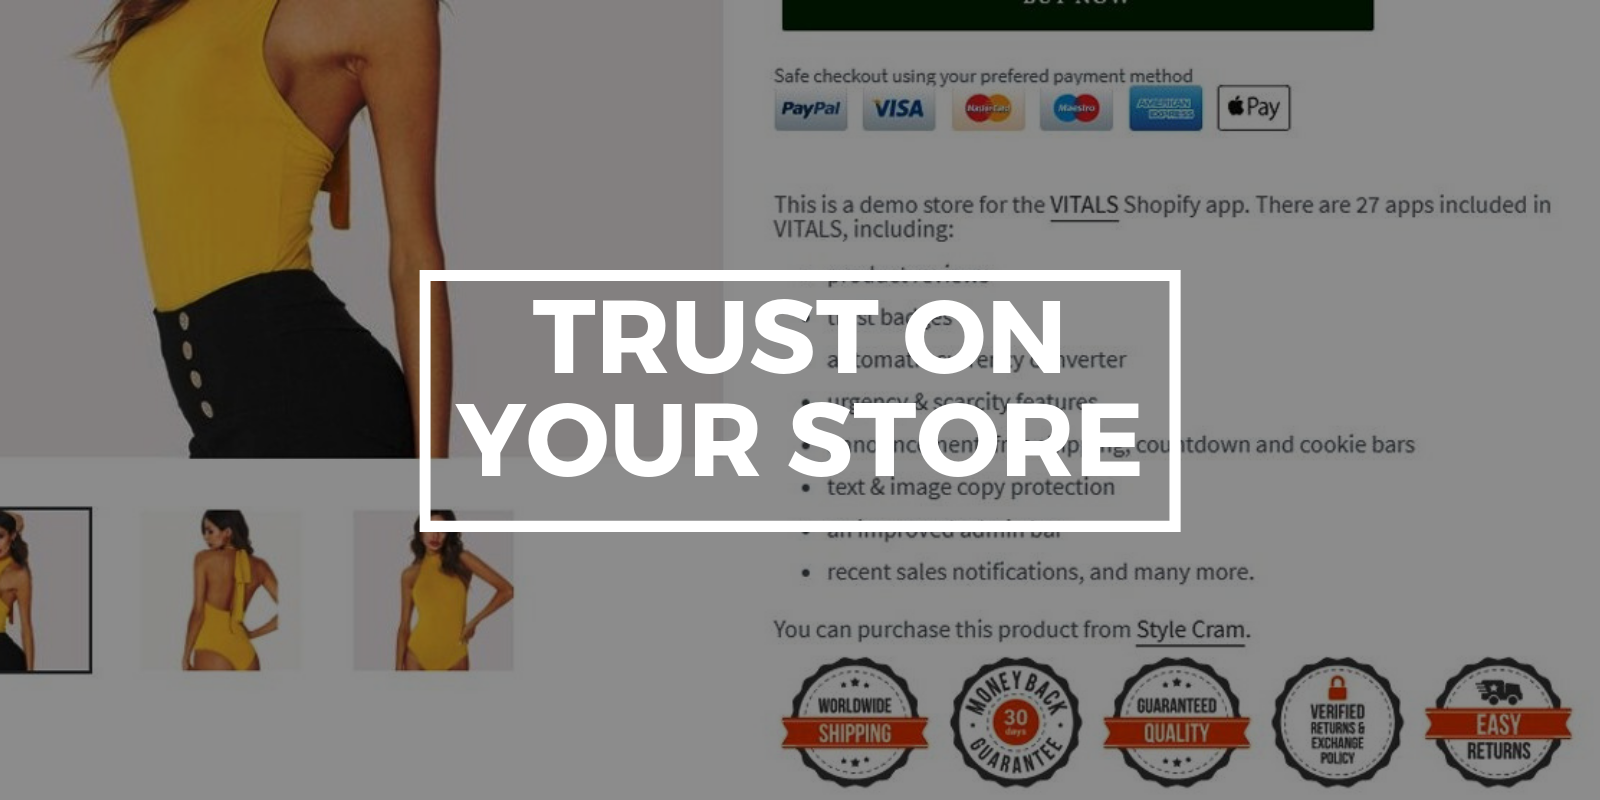 What Impact Do Trust Badges Have on Conversions and Sales